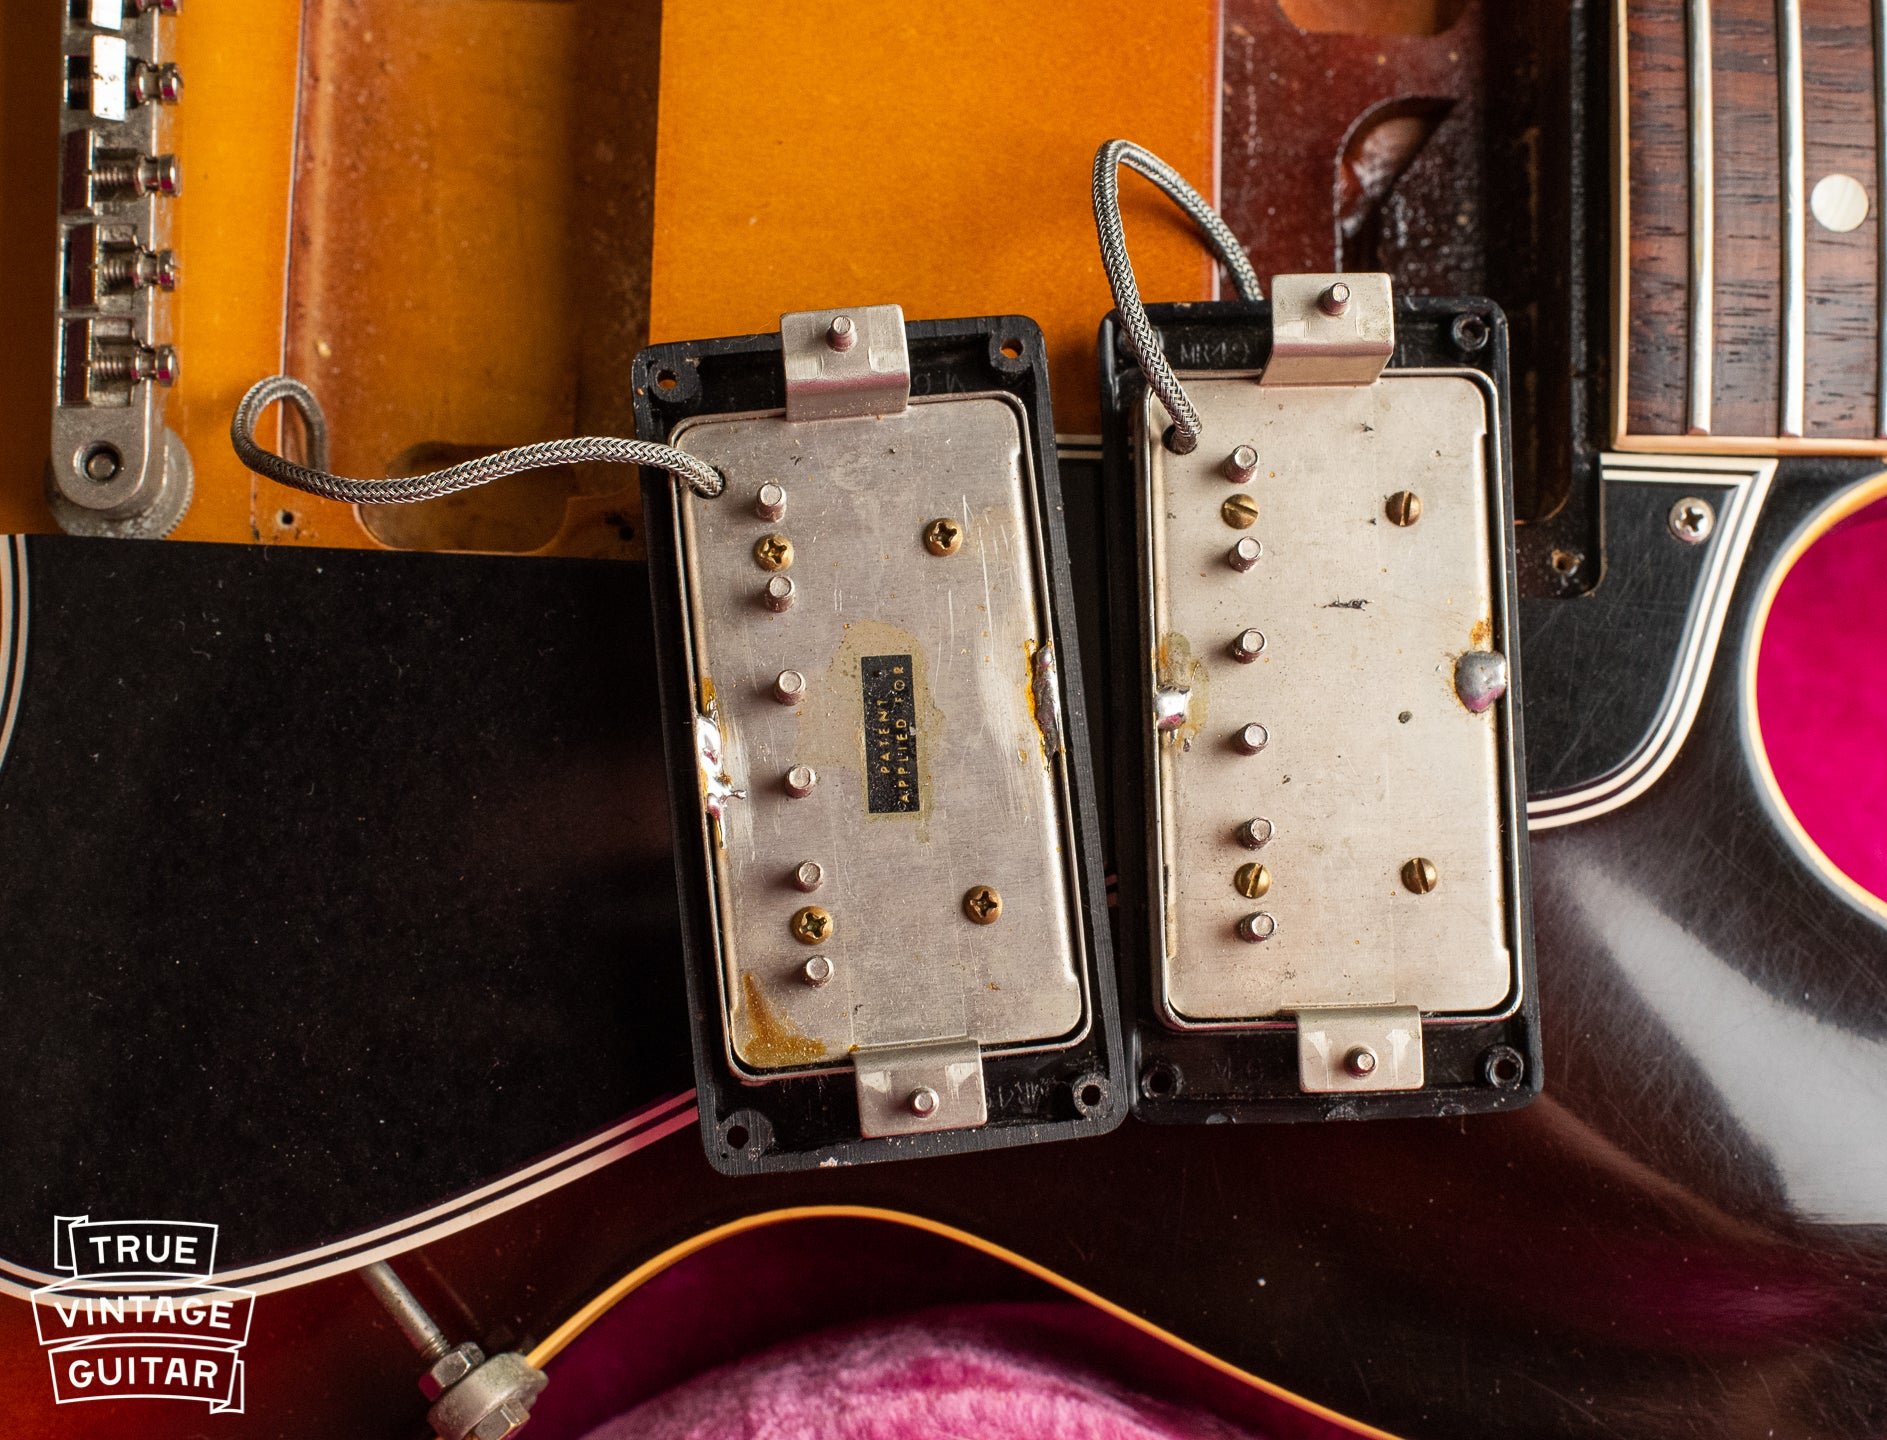 Original Patent Applied for humbucking pickups, PAF pickups, 1960 Gibson ES-335